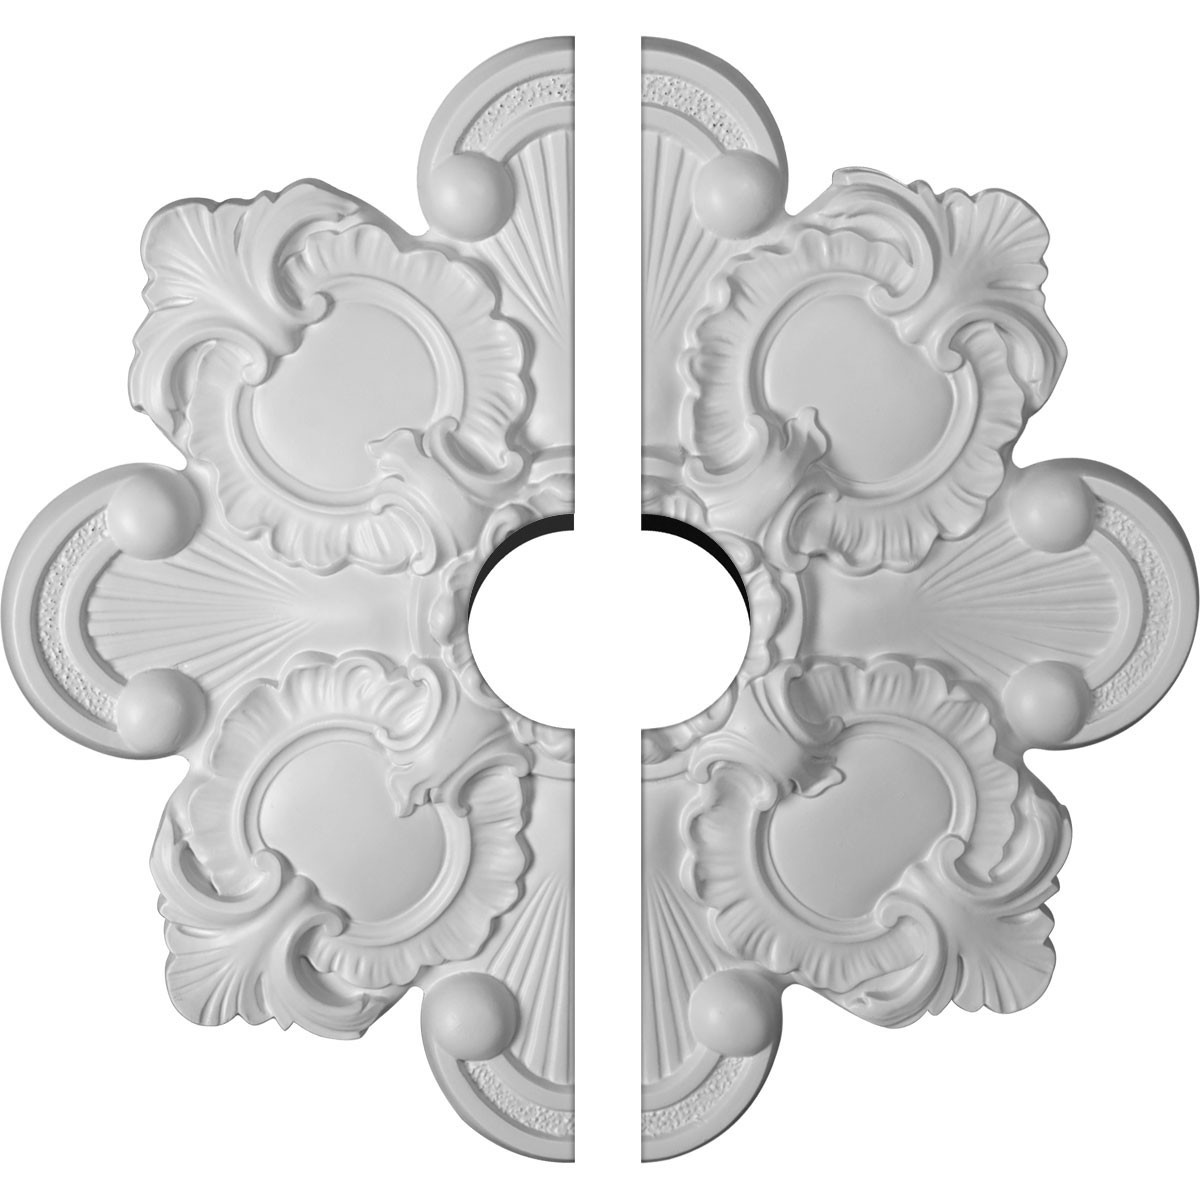 "EM-CM18KA2-03500 - 18 1/8""OD x 3 1/2""ID x 1 1/4""P Katheryn Ceiling Medallion, Two Piece (Fits Canopies up to 3 1/2"")"